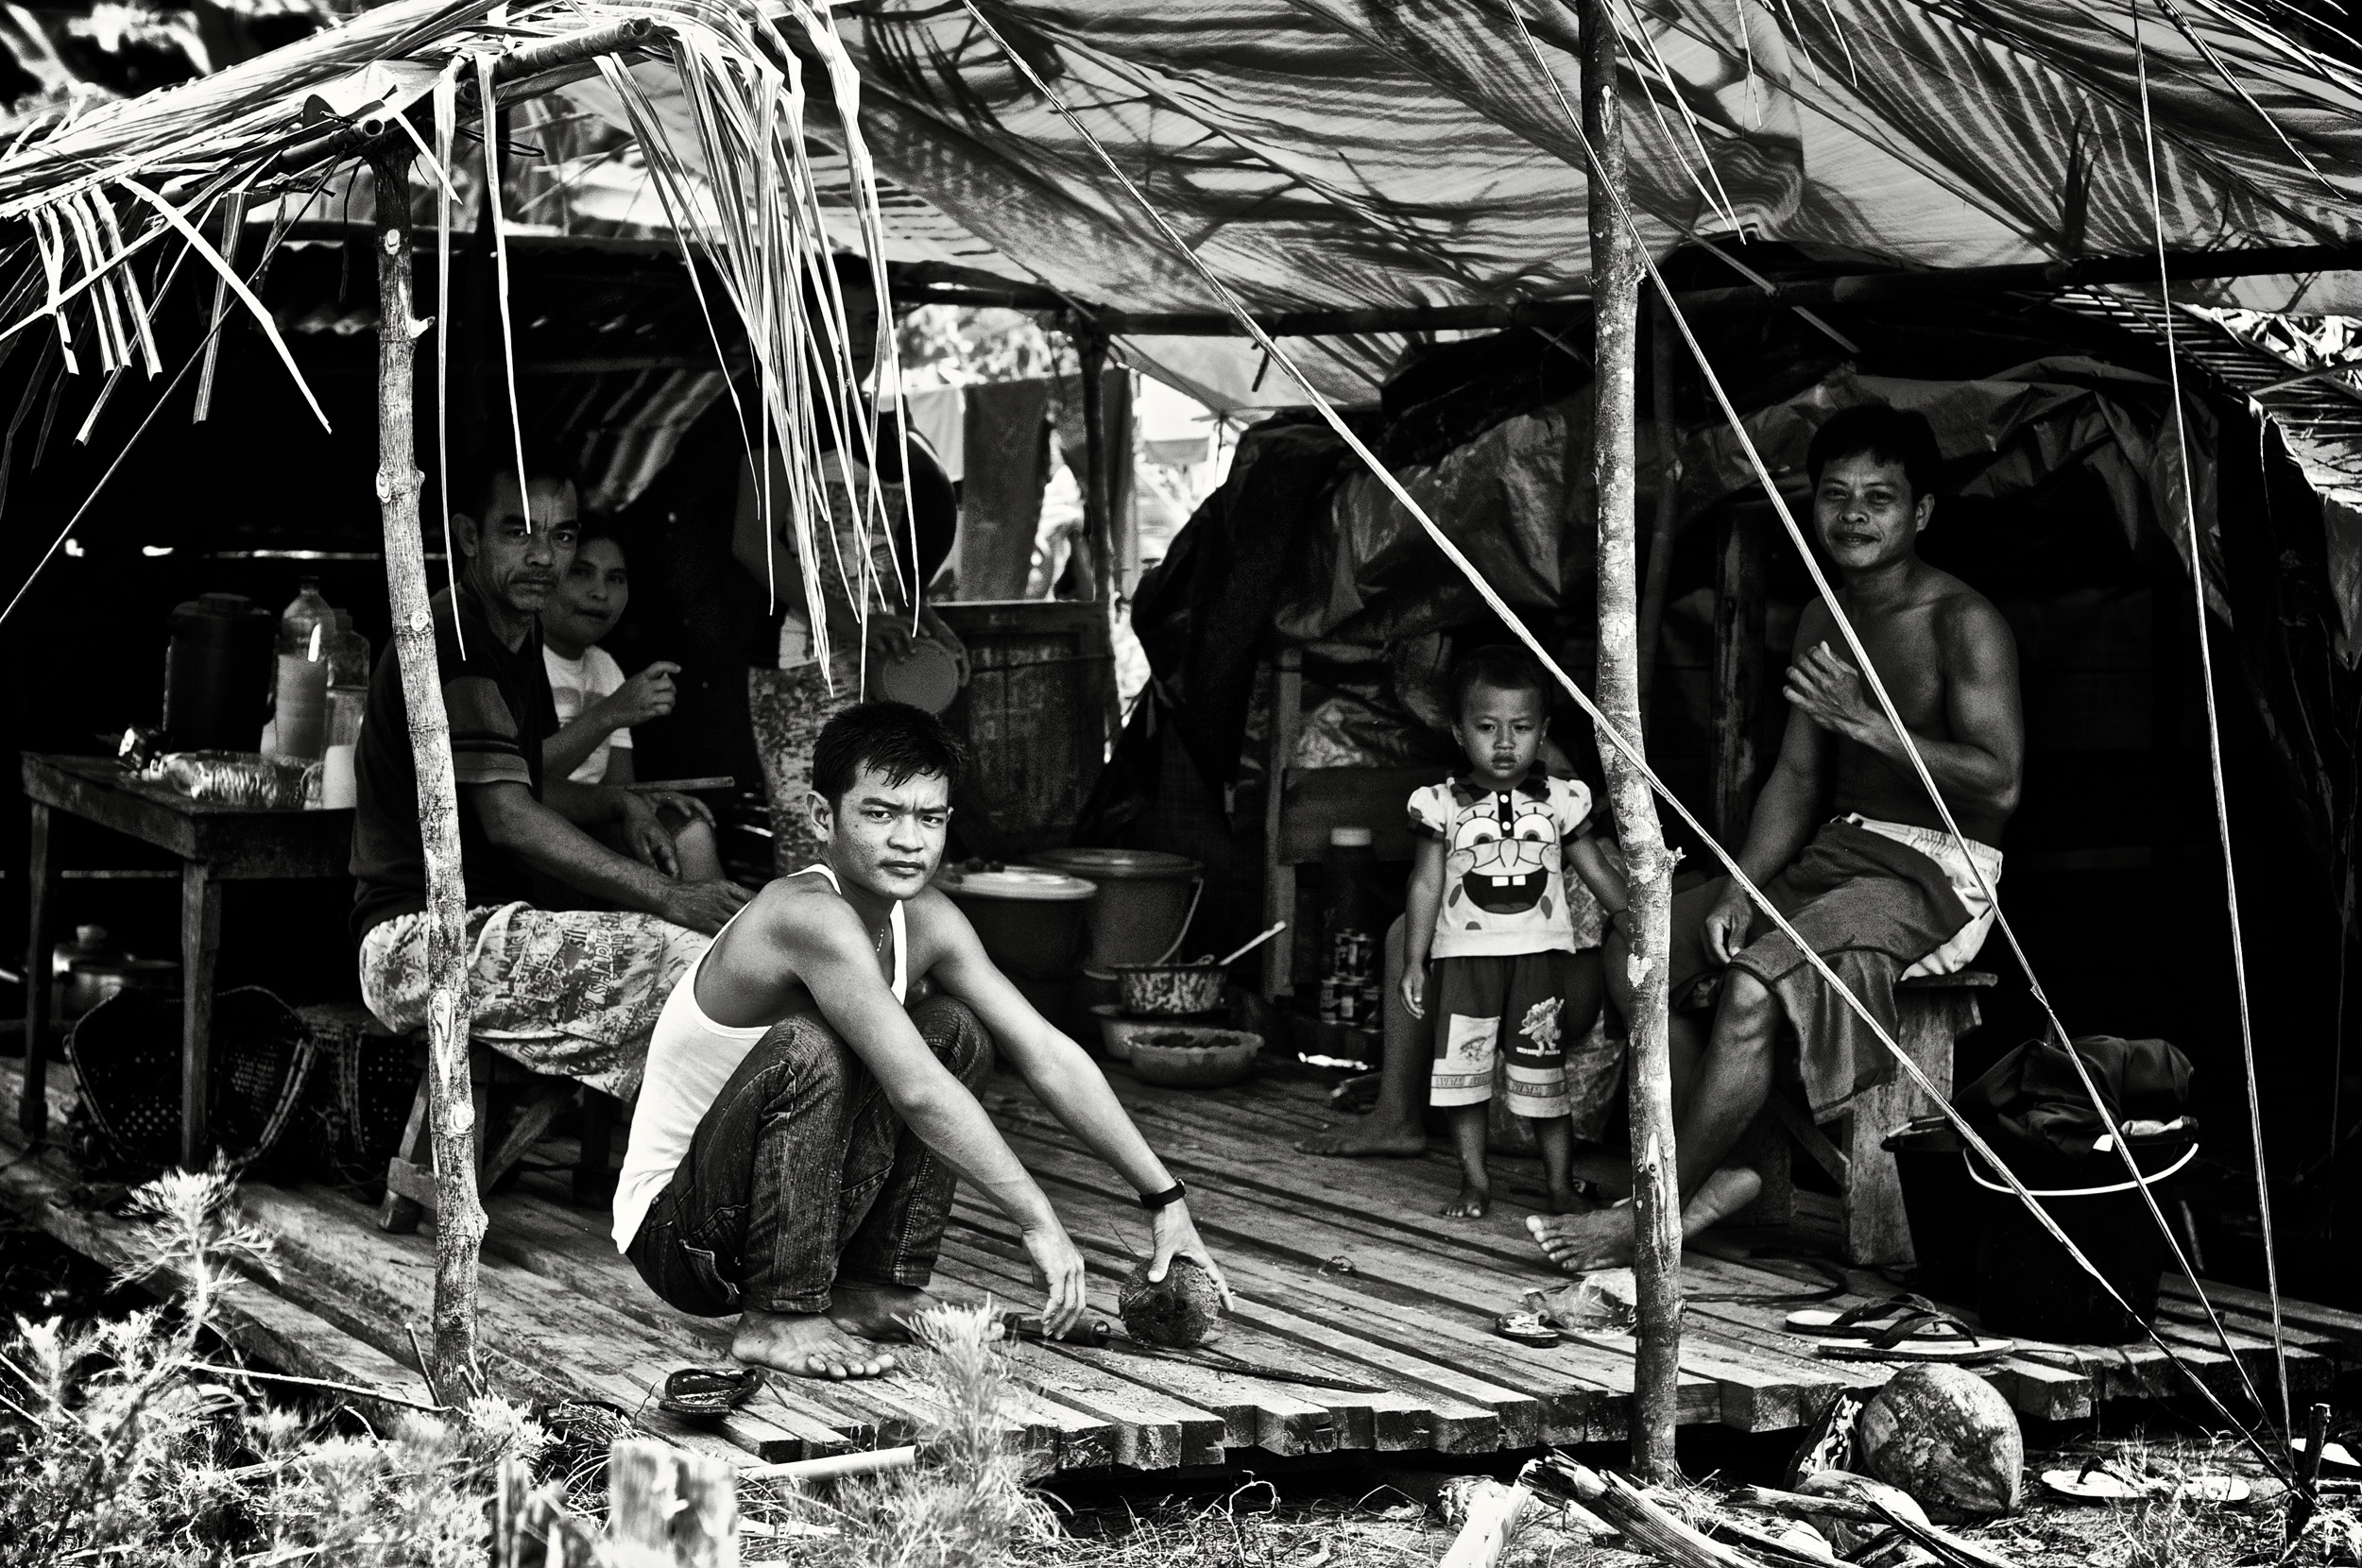 More than 11,400 people are still displaced from their homes. Photo: Michael Lawrence/SurfAid